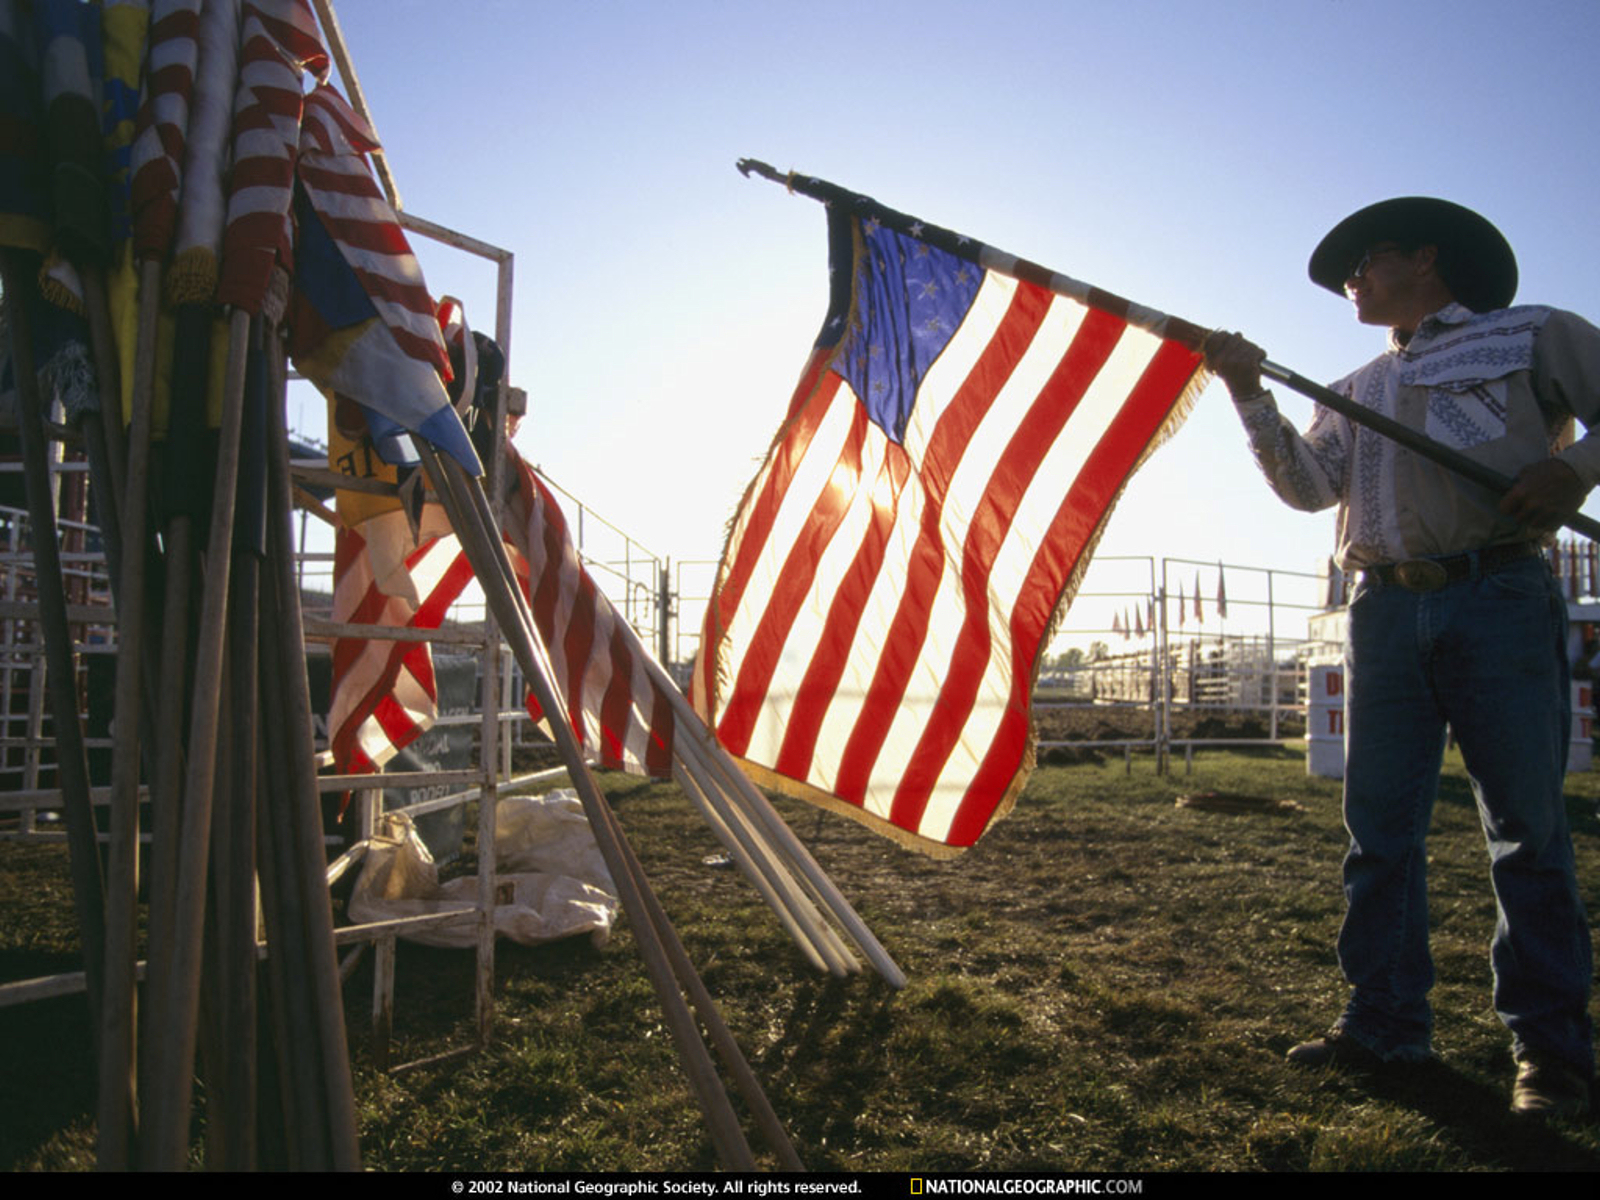 """American Flag, Spencer, Iowa, 1996 – caption from the National Geographic Society: A man rolls up U.S. flags at the end of the Clay County Fair in Spencer, Iowa. """"Although the population of Spencer is only about 12,000, the fair draws some 300,000 visitors. Once a year, rising from the endless flatness of the Iowa countryside, a crowd forms—to stroll, to hear big country music acts like the Statler Brothers, to sell a grand champion boar, to buy a new silo."""" (Photographed on assignment for, but not published in, """"County Fairs,"""" October 1997, National Geographic magazine) Photograph by Randy Olson; copyright National Geographic Society"""